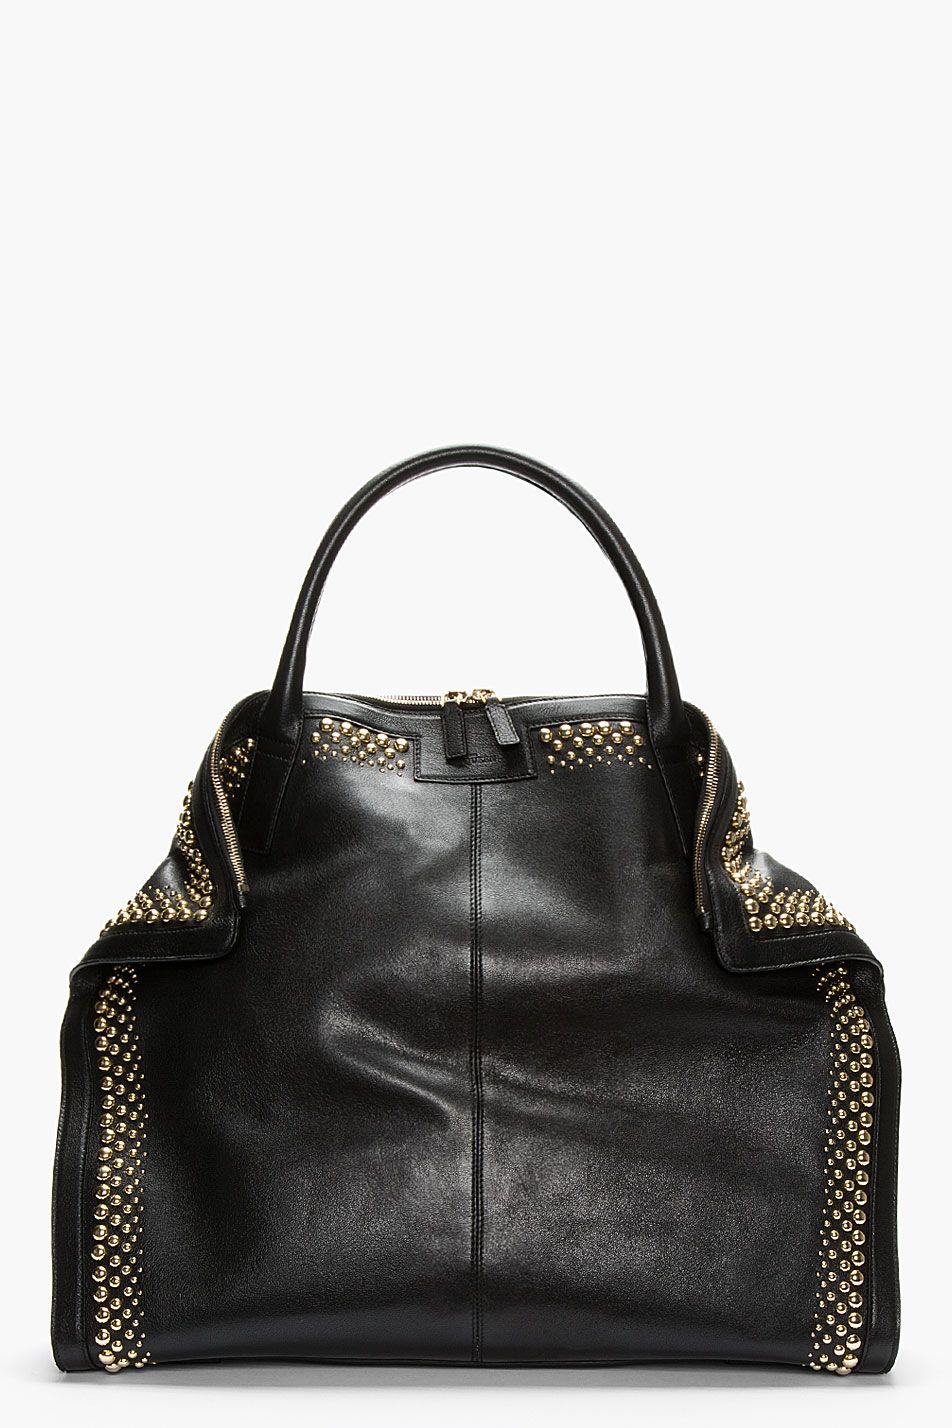 Alexander Mcqueen Black Leather Studded De Manta City Tote